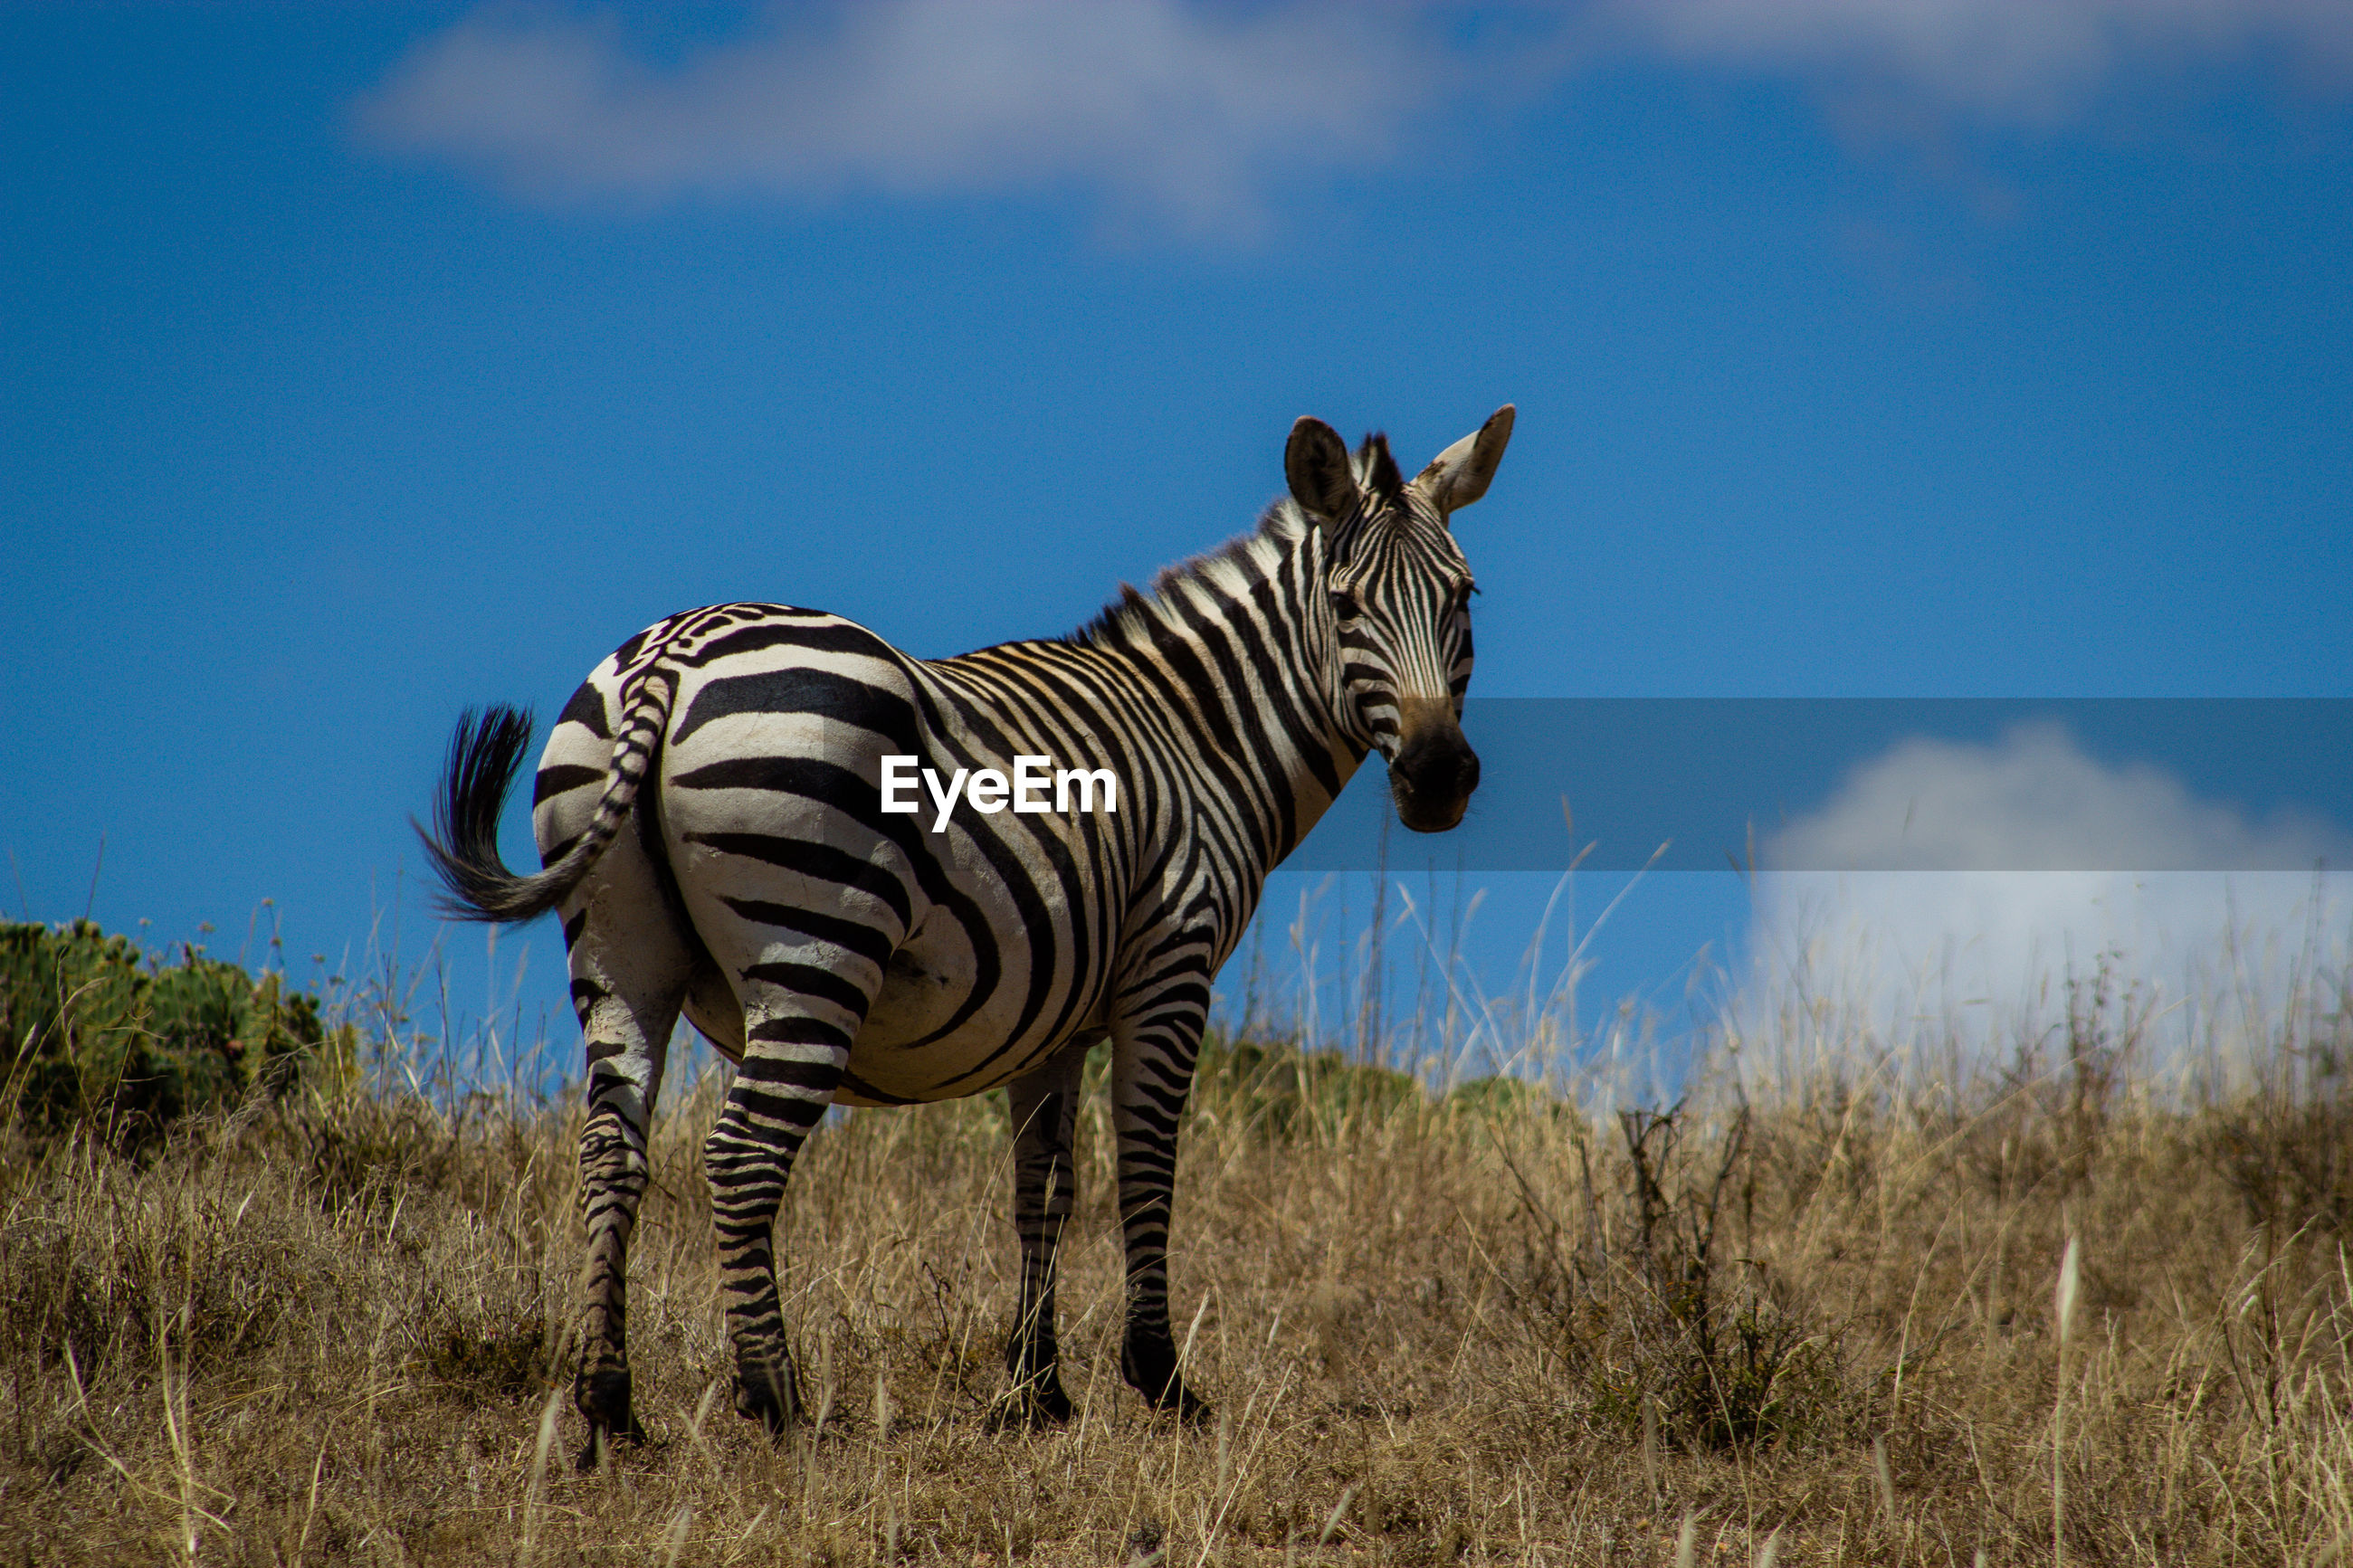 ZEBRAS ON A FIELD OF A HORSE